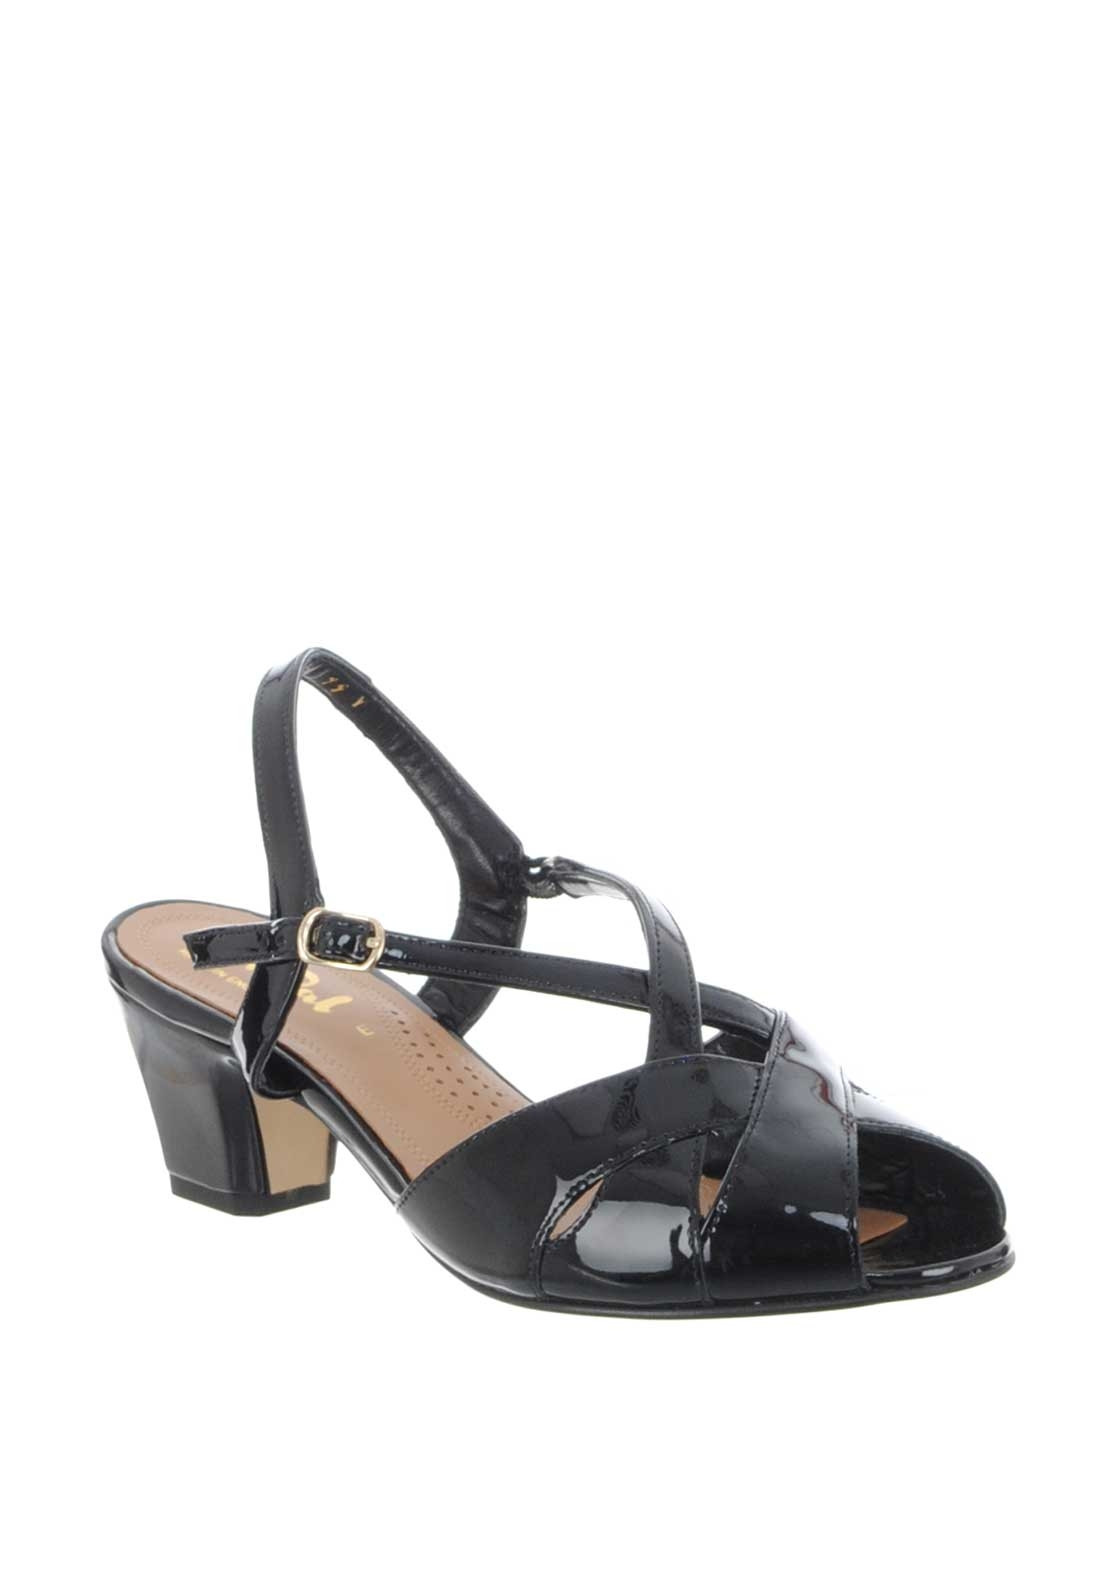 1730263e8a Van Dal Libby Leather Patent Sandals